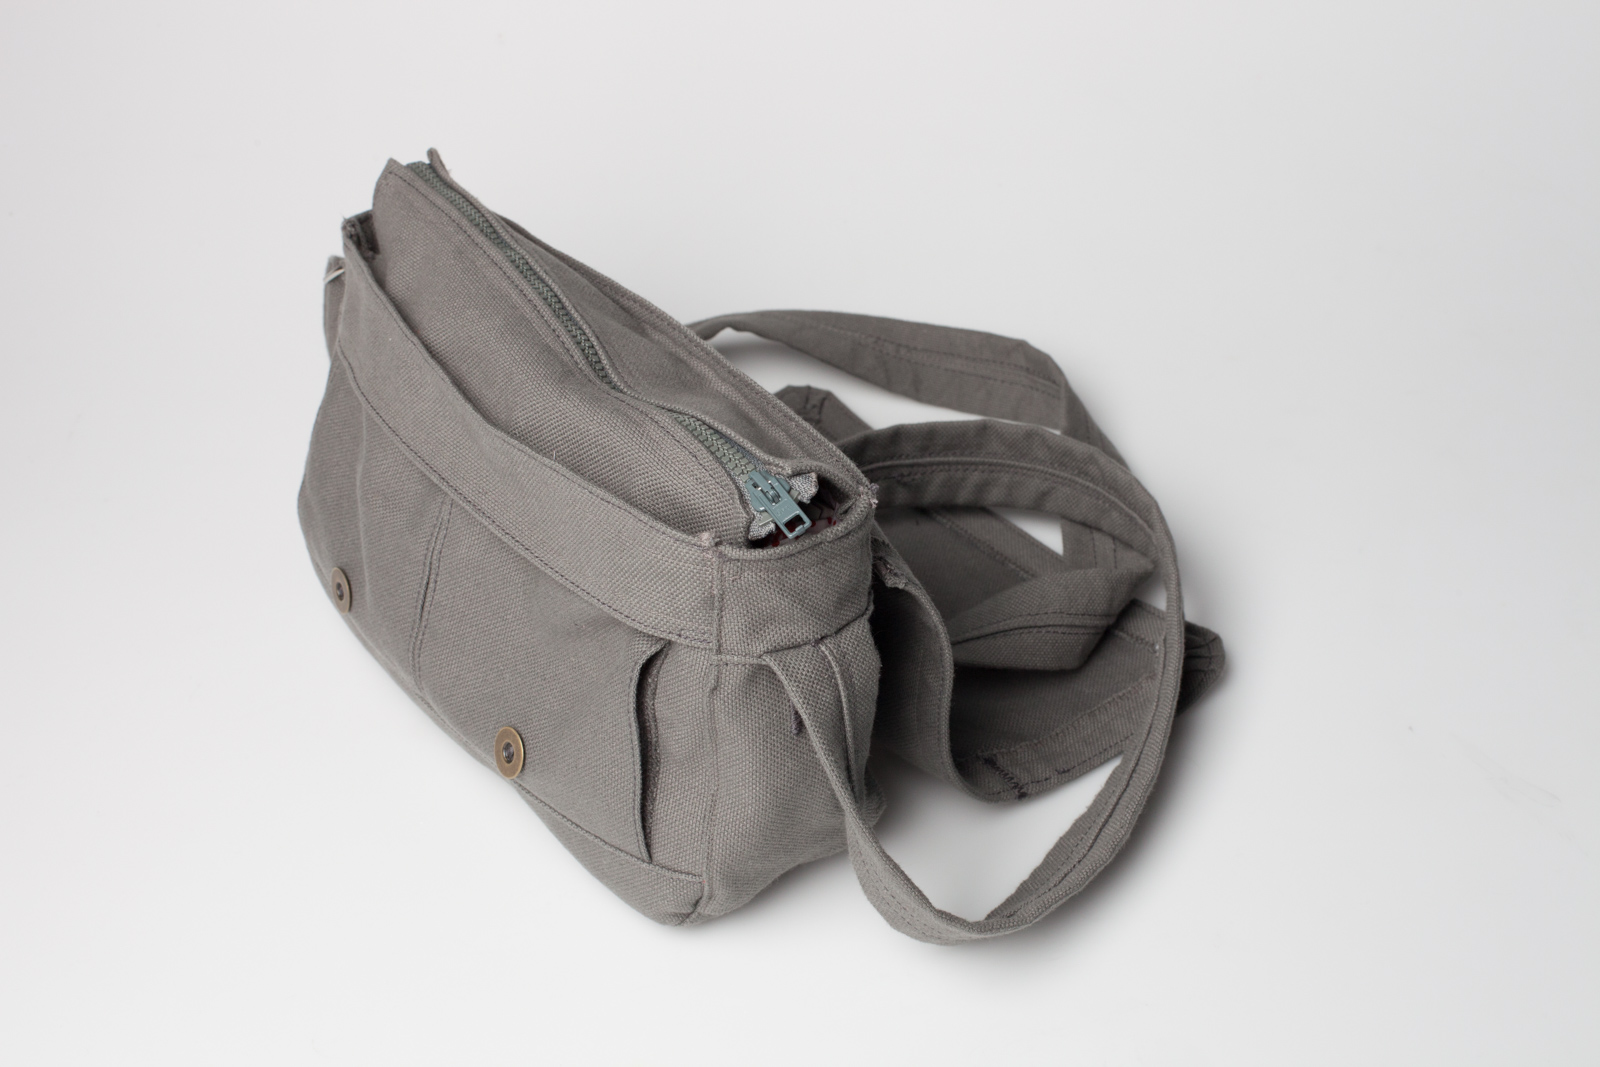 the closed grey fabric handbag